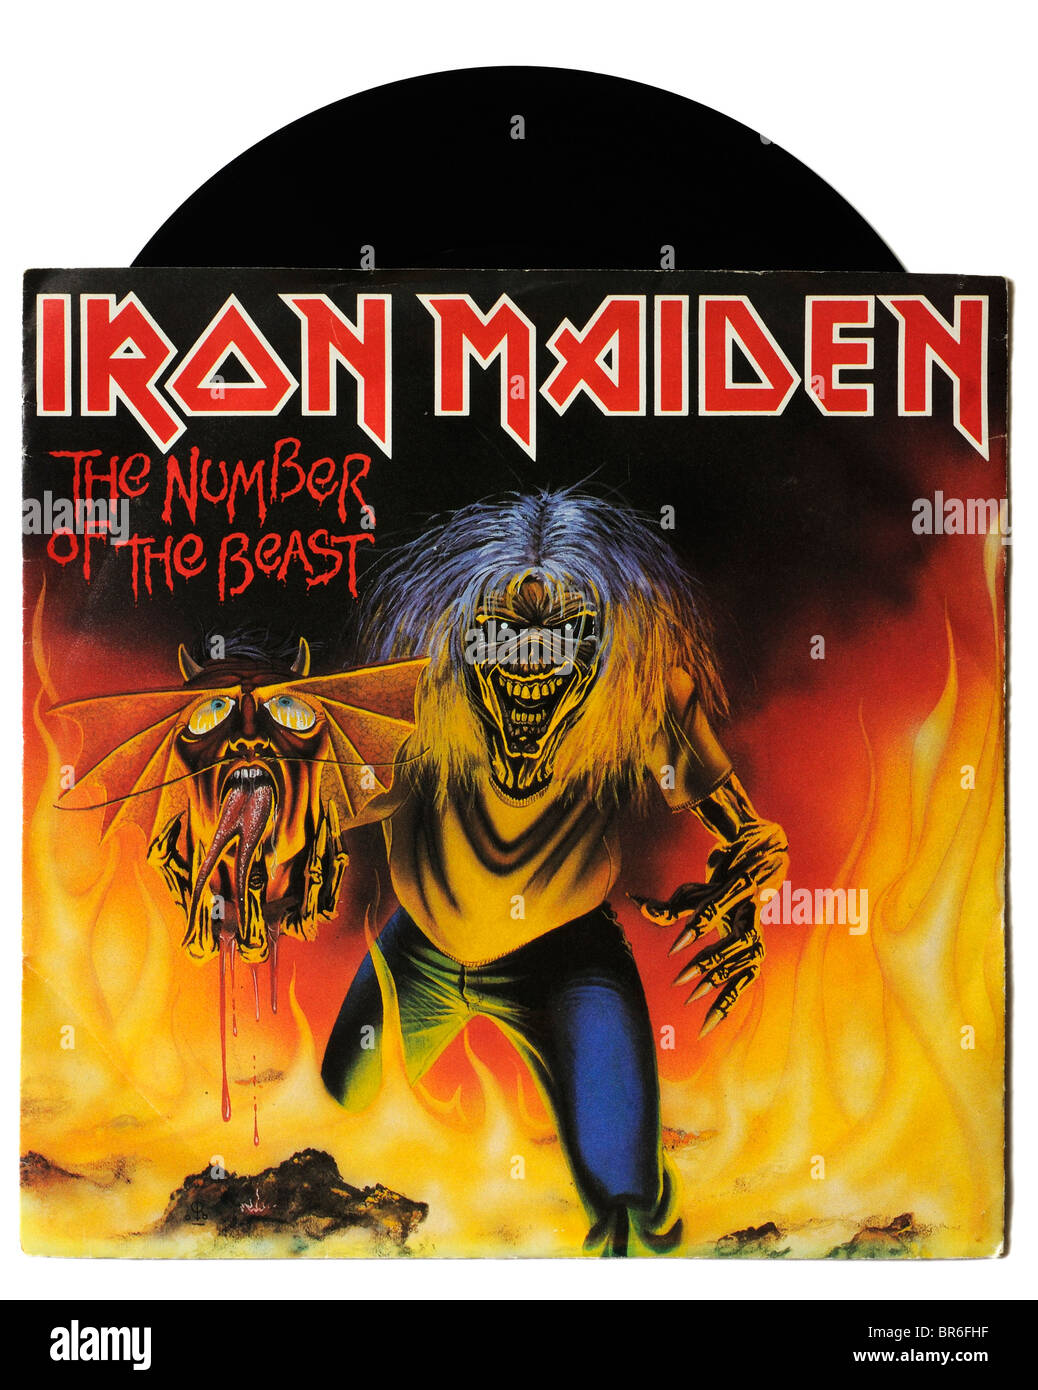 Iron Maiden The Number of the Beast single - Stock Image